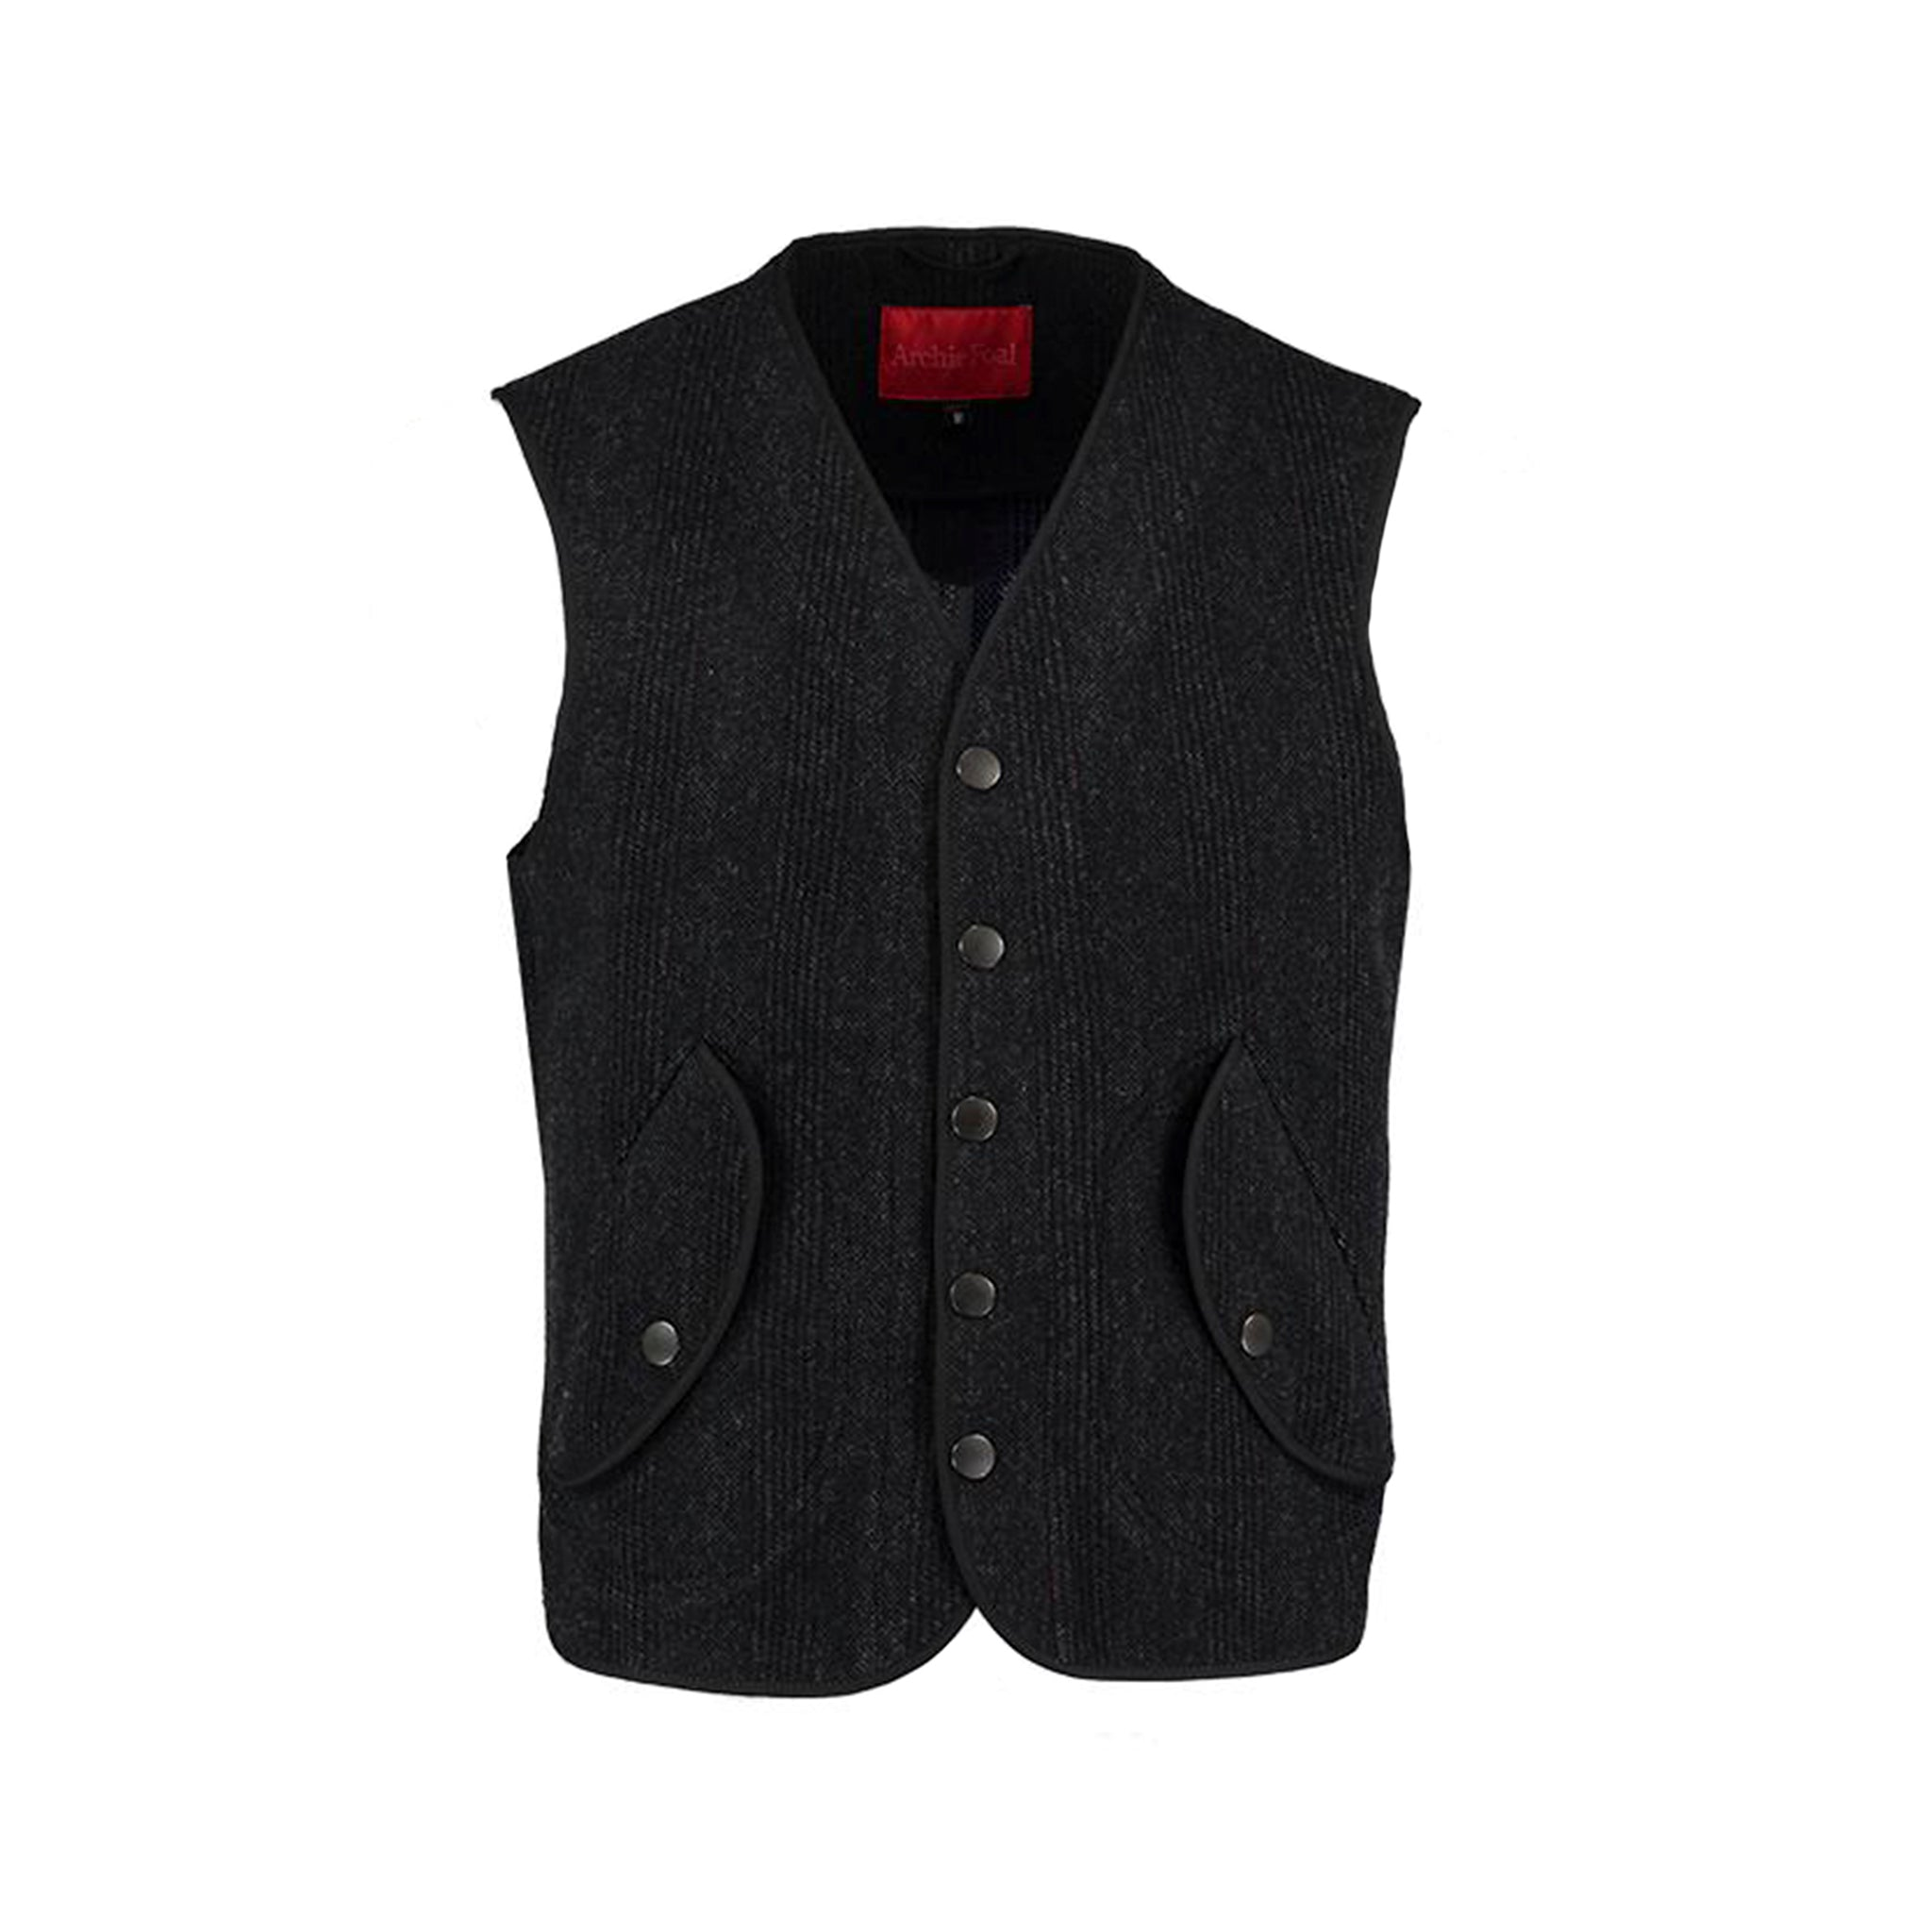 Archie Foal Men's Charcoal Grey Check Unlined Waistcoat